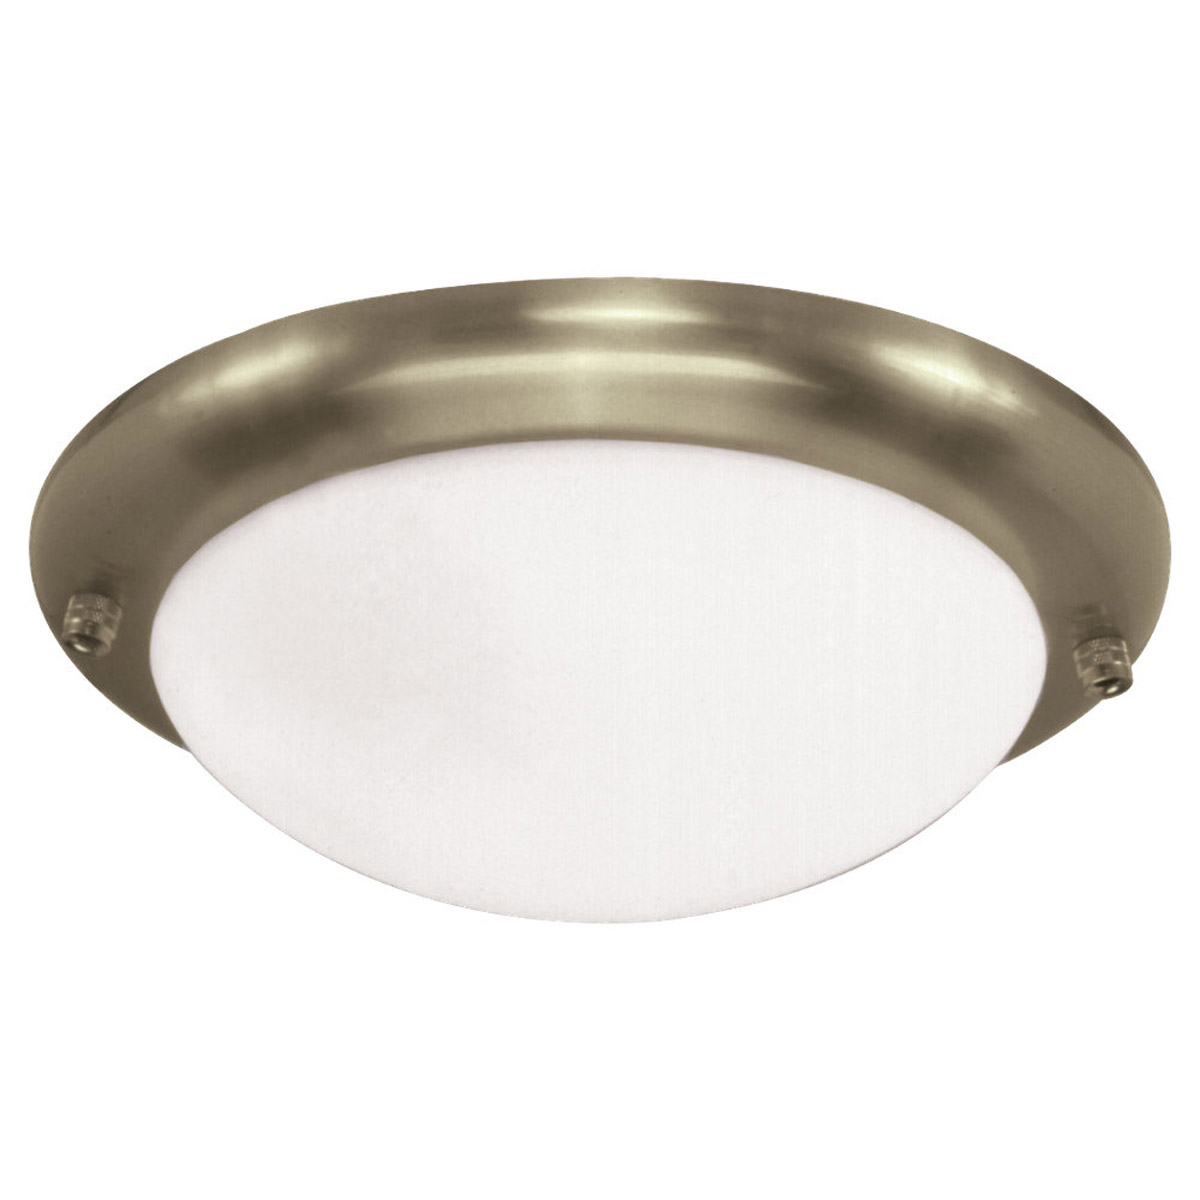 Sea Gull Lighting Signature 1 Light Ceiling Fan Light Kit in Golden Pewter 16148BL-853 photo